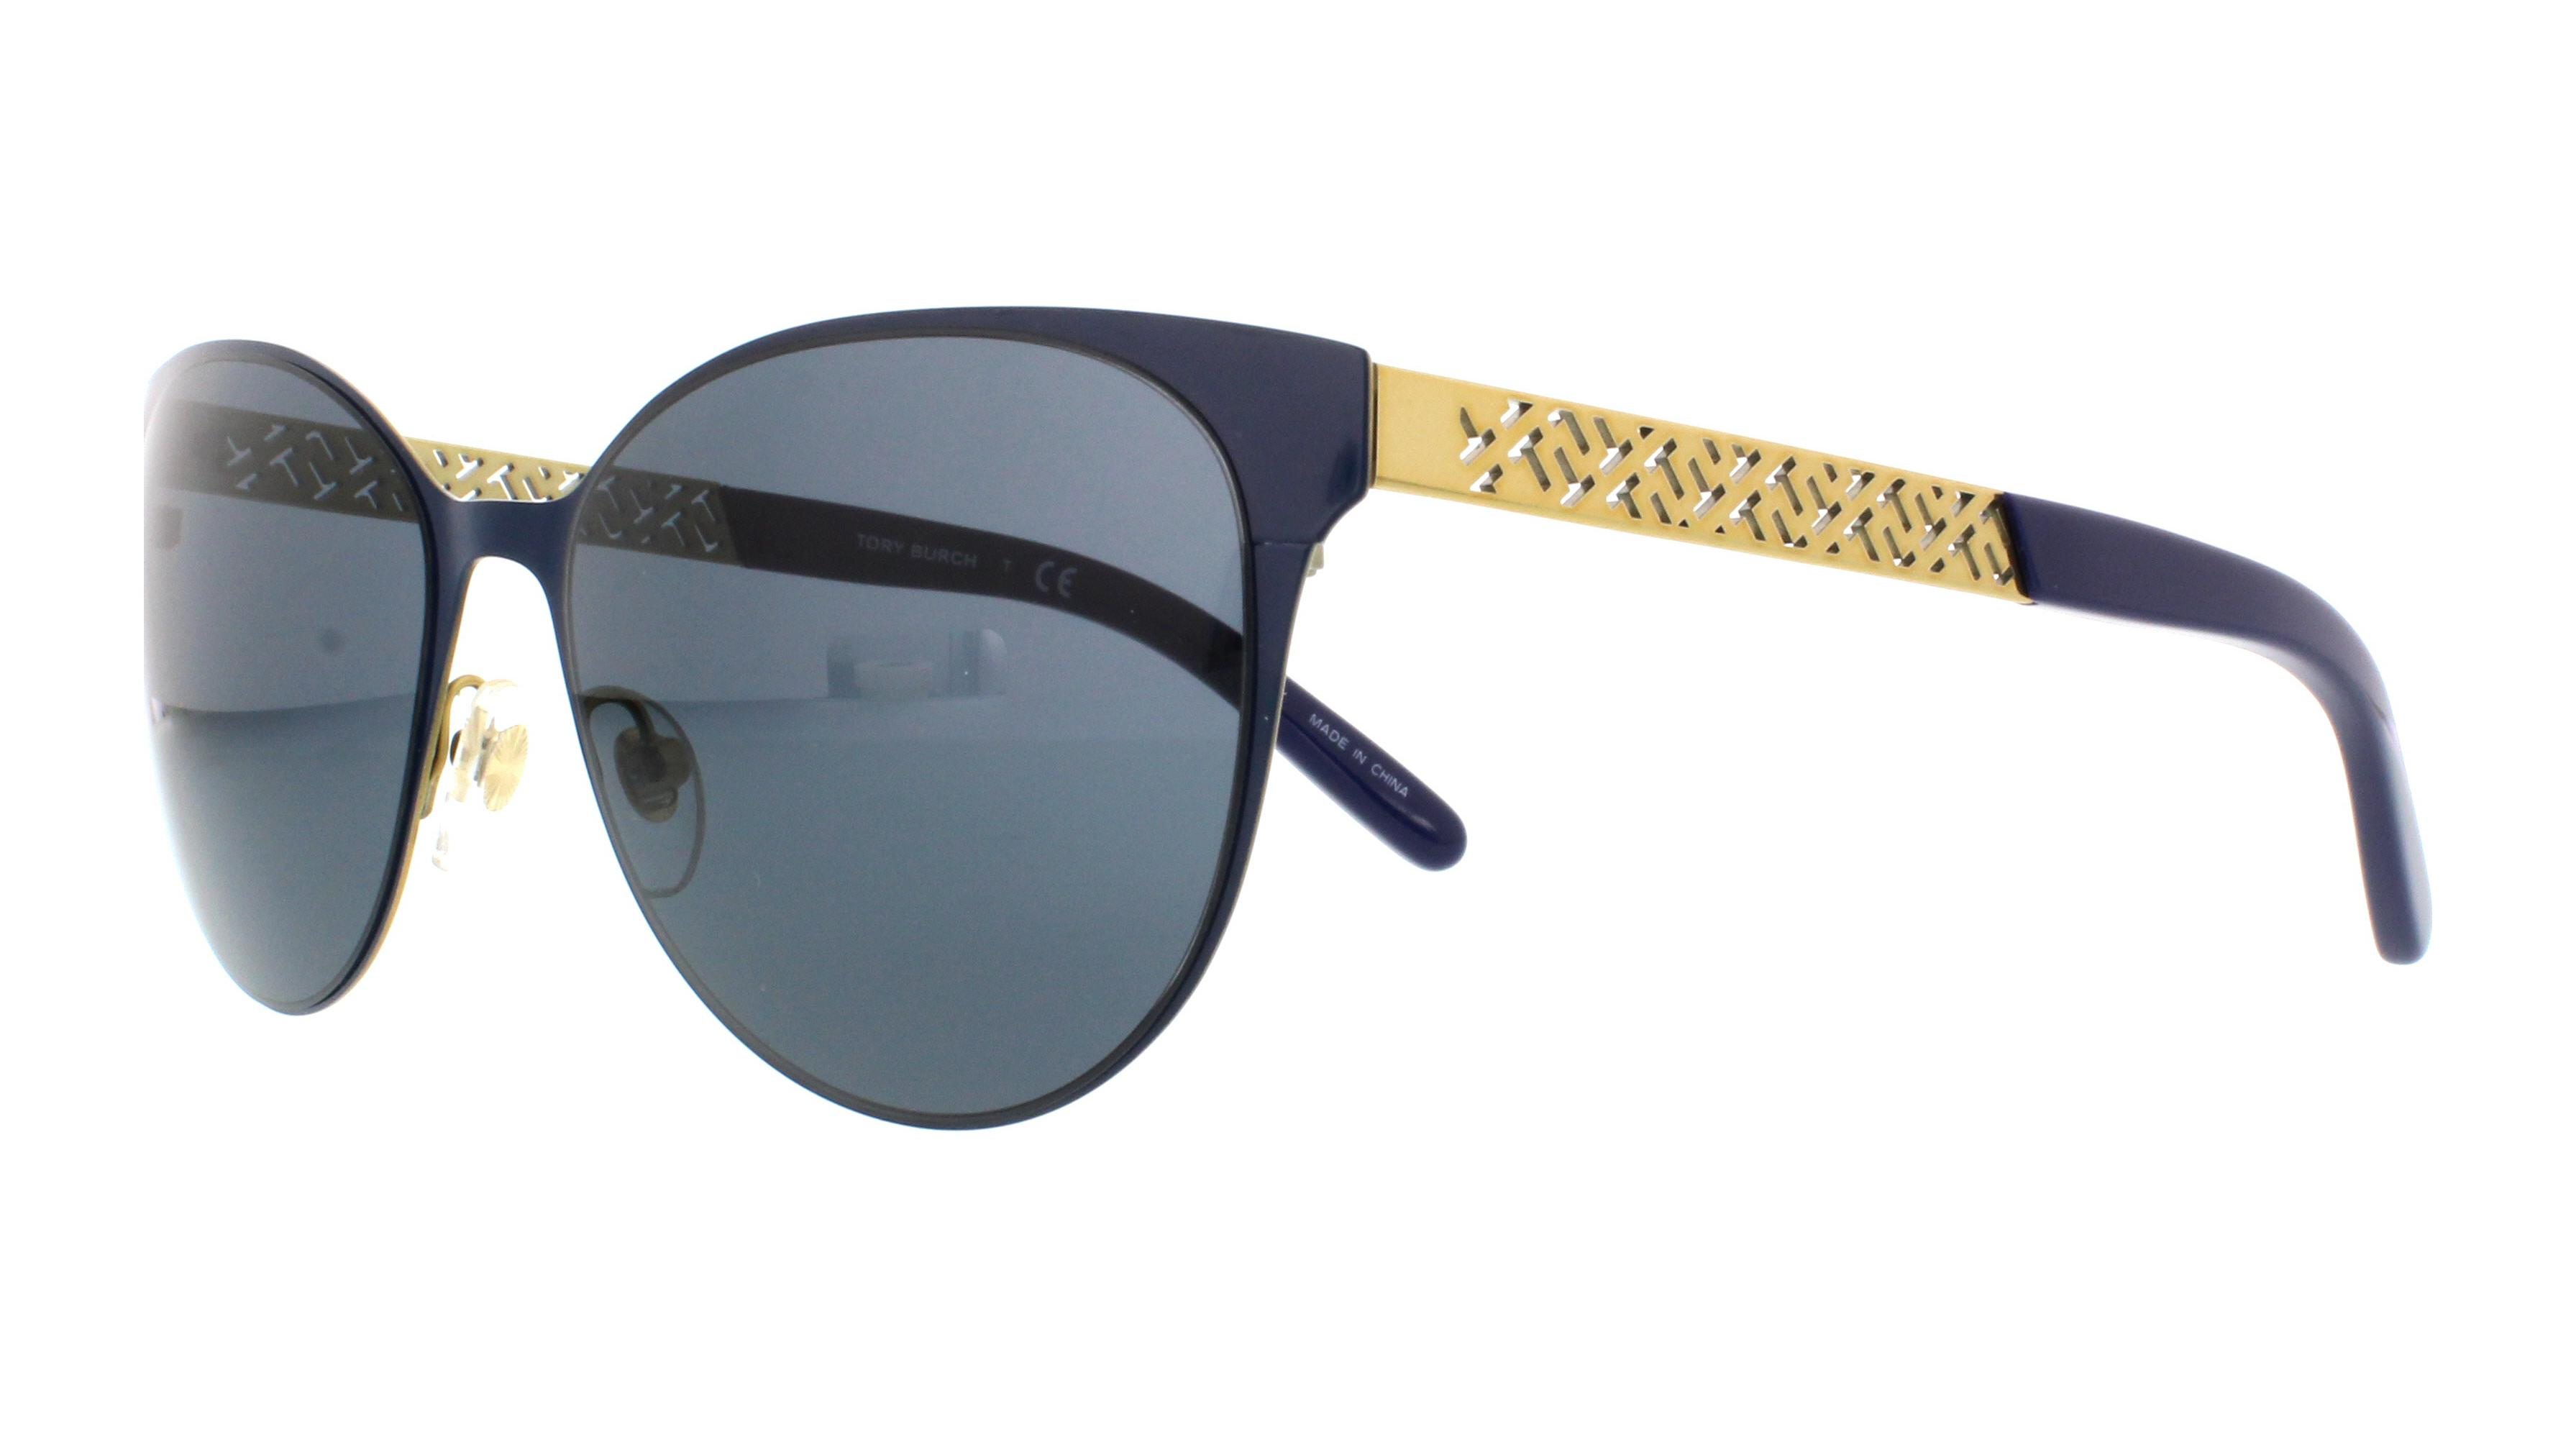 9a36f7a62db Designer Frames Outlet. Tory Burch TY6046